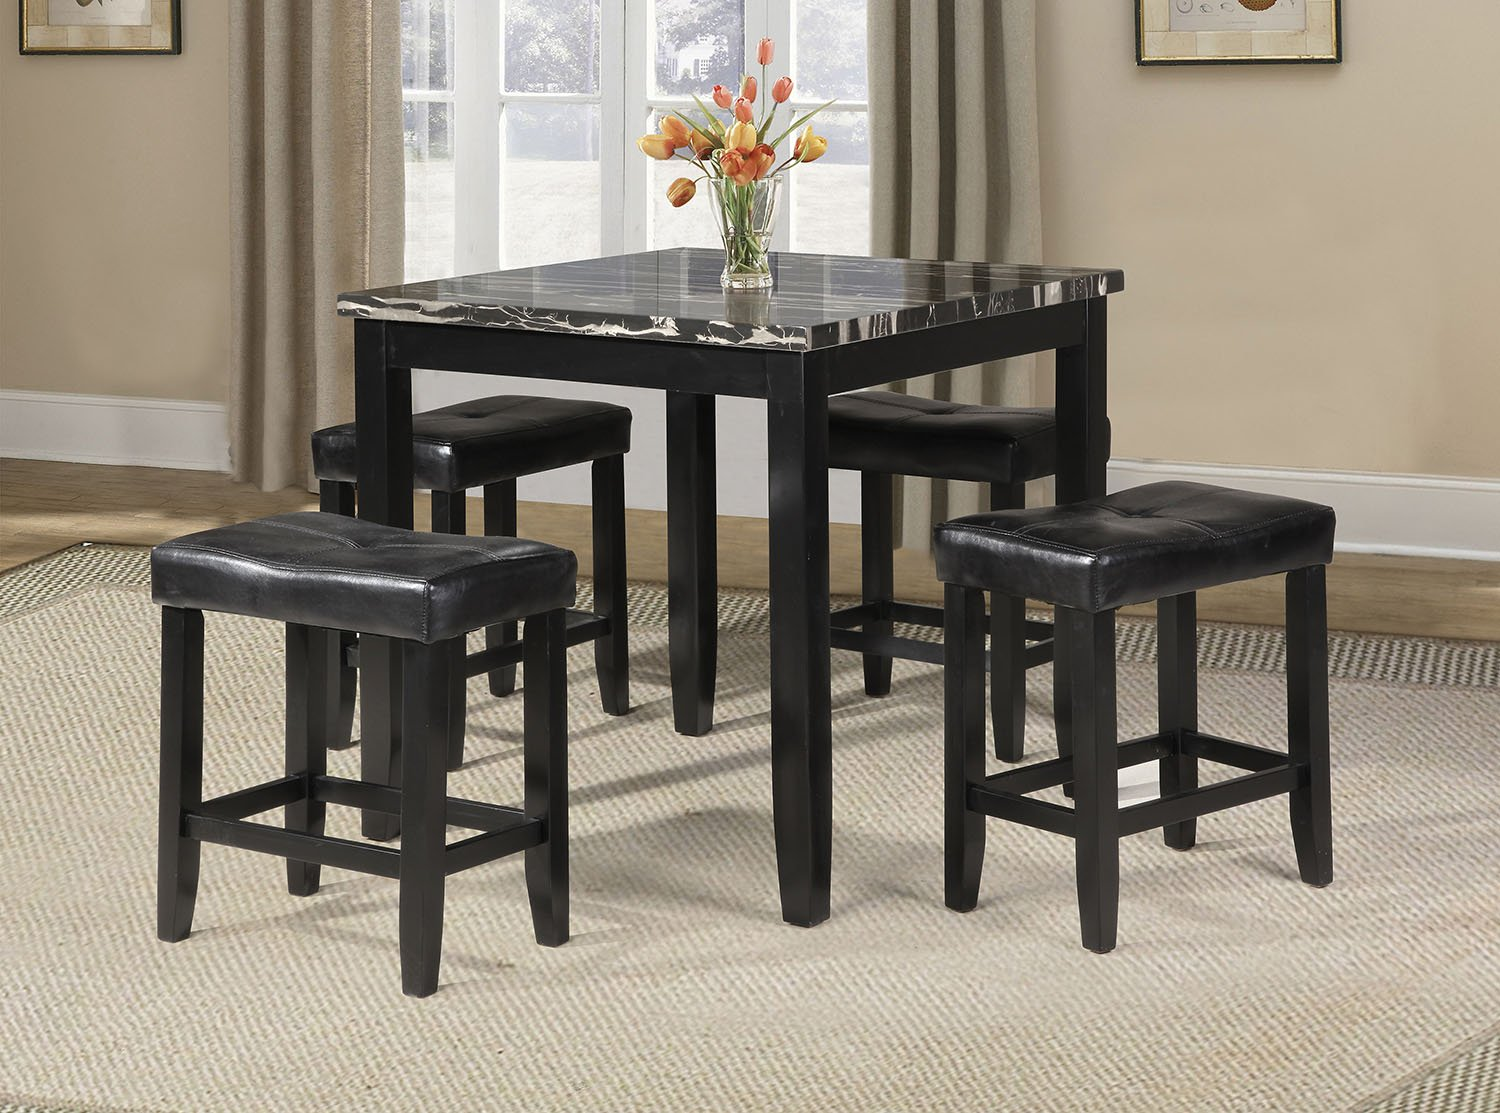 Acme Furniture 71095 Blythe 5 Piece Faux Marble Counter Height Set, Black